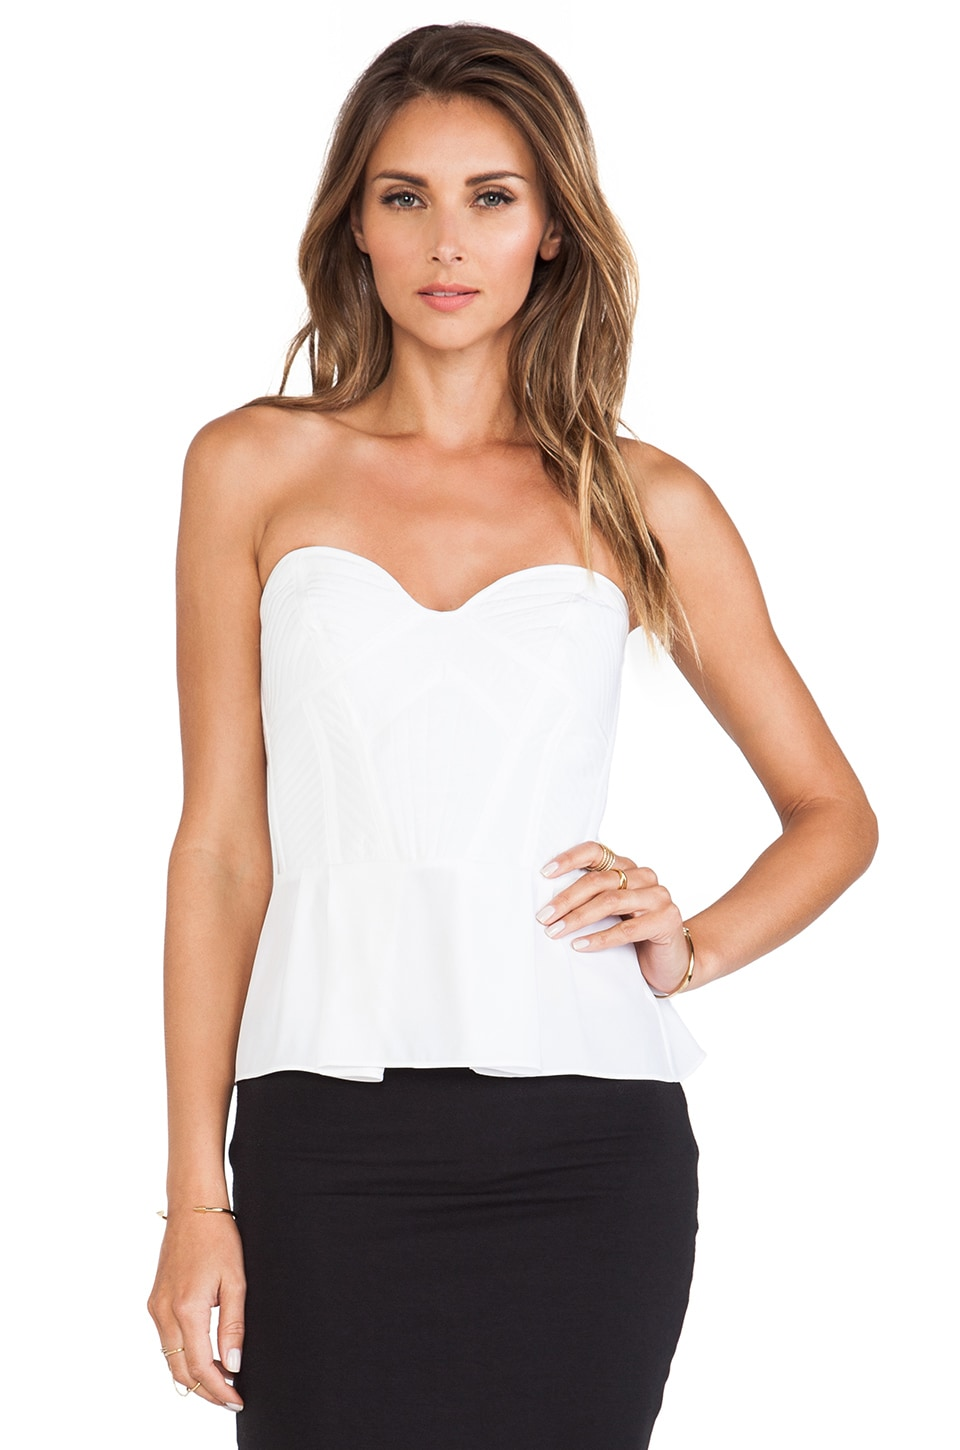 Parker Penelope Top in White